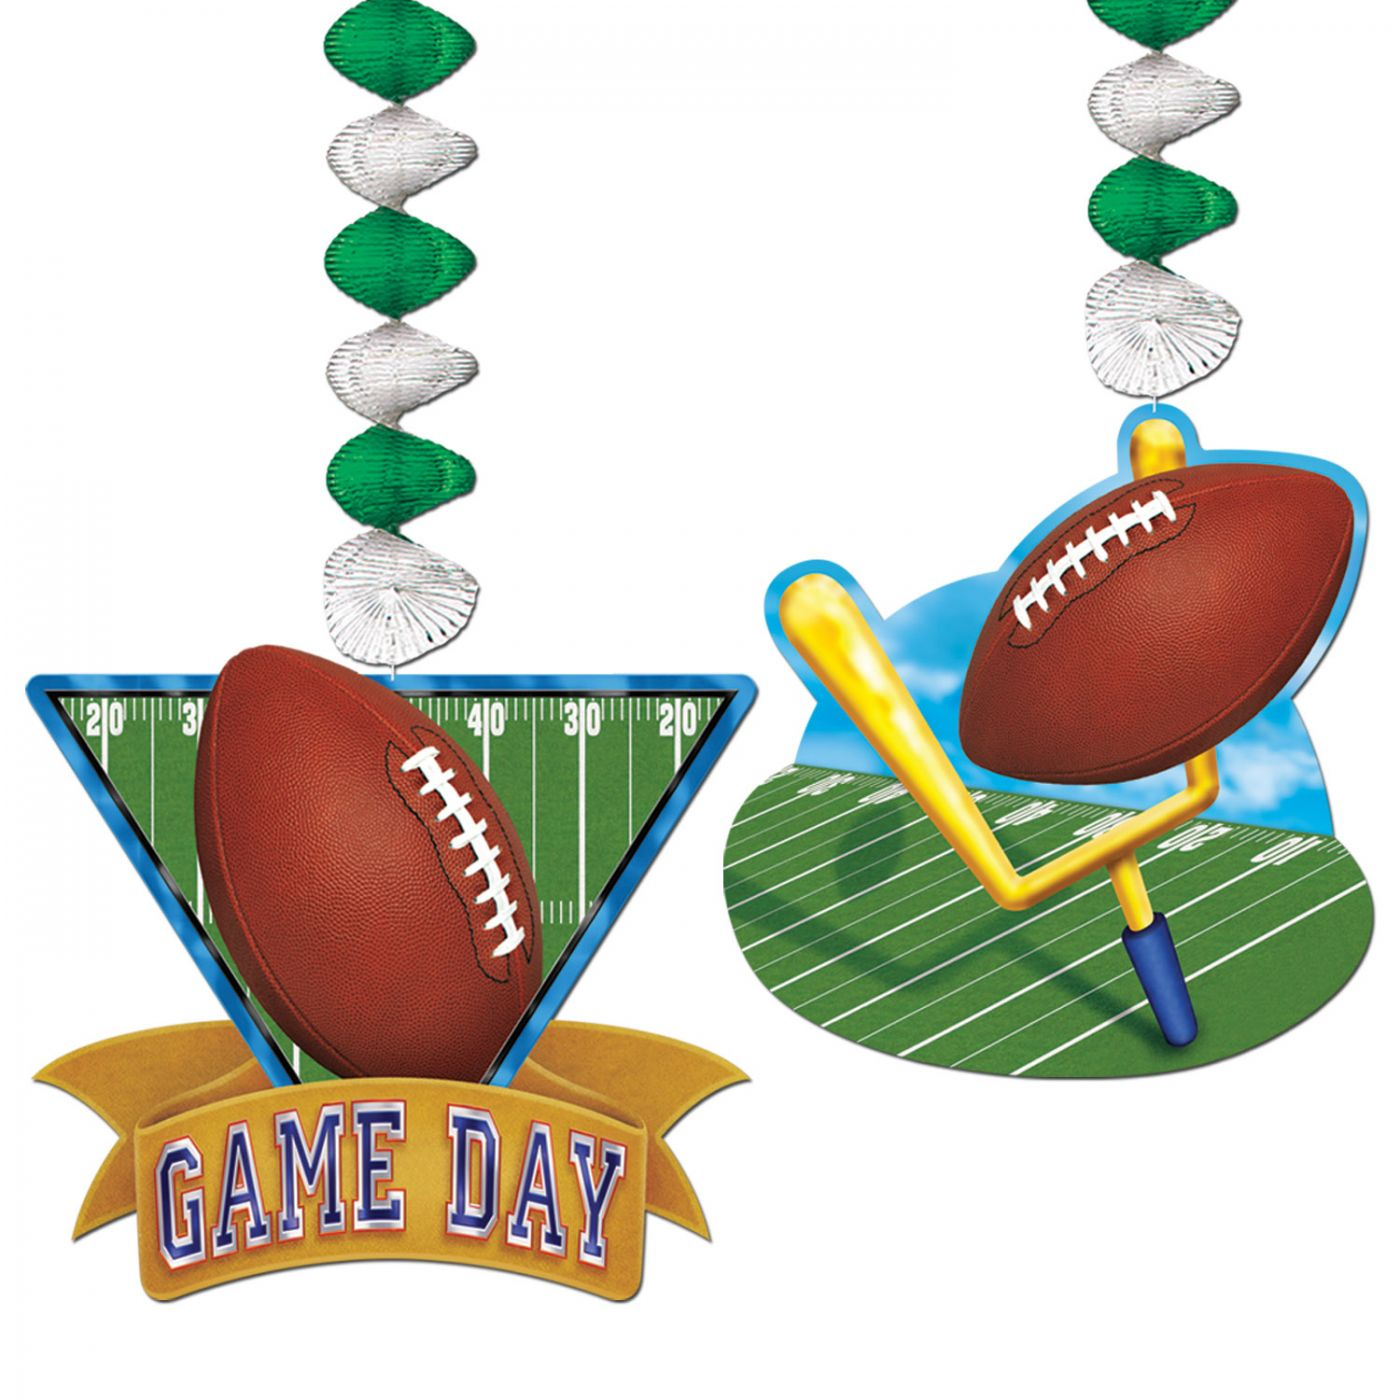 Game Day Football Danglers image